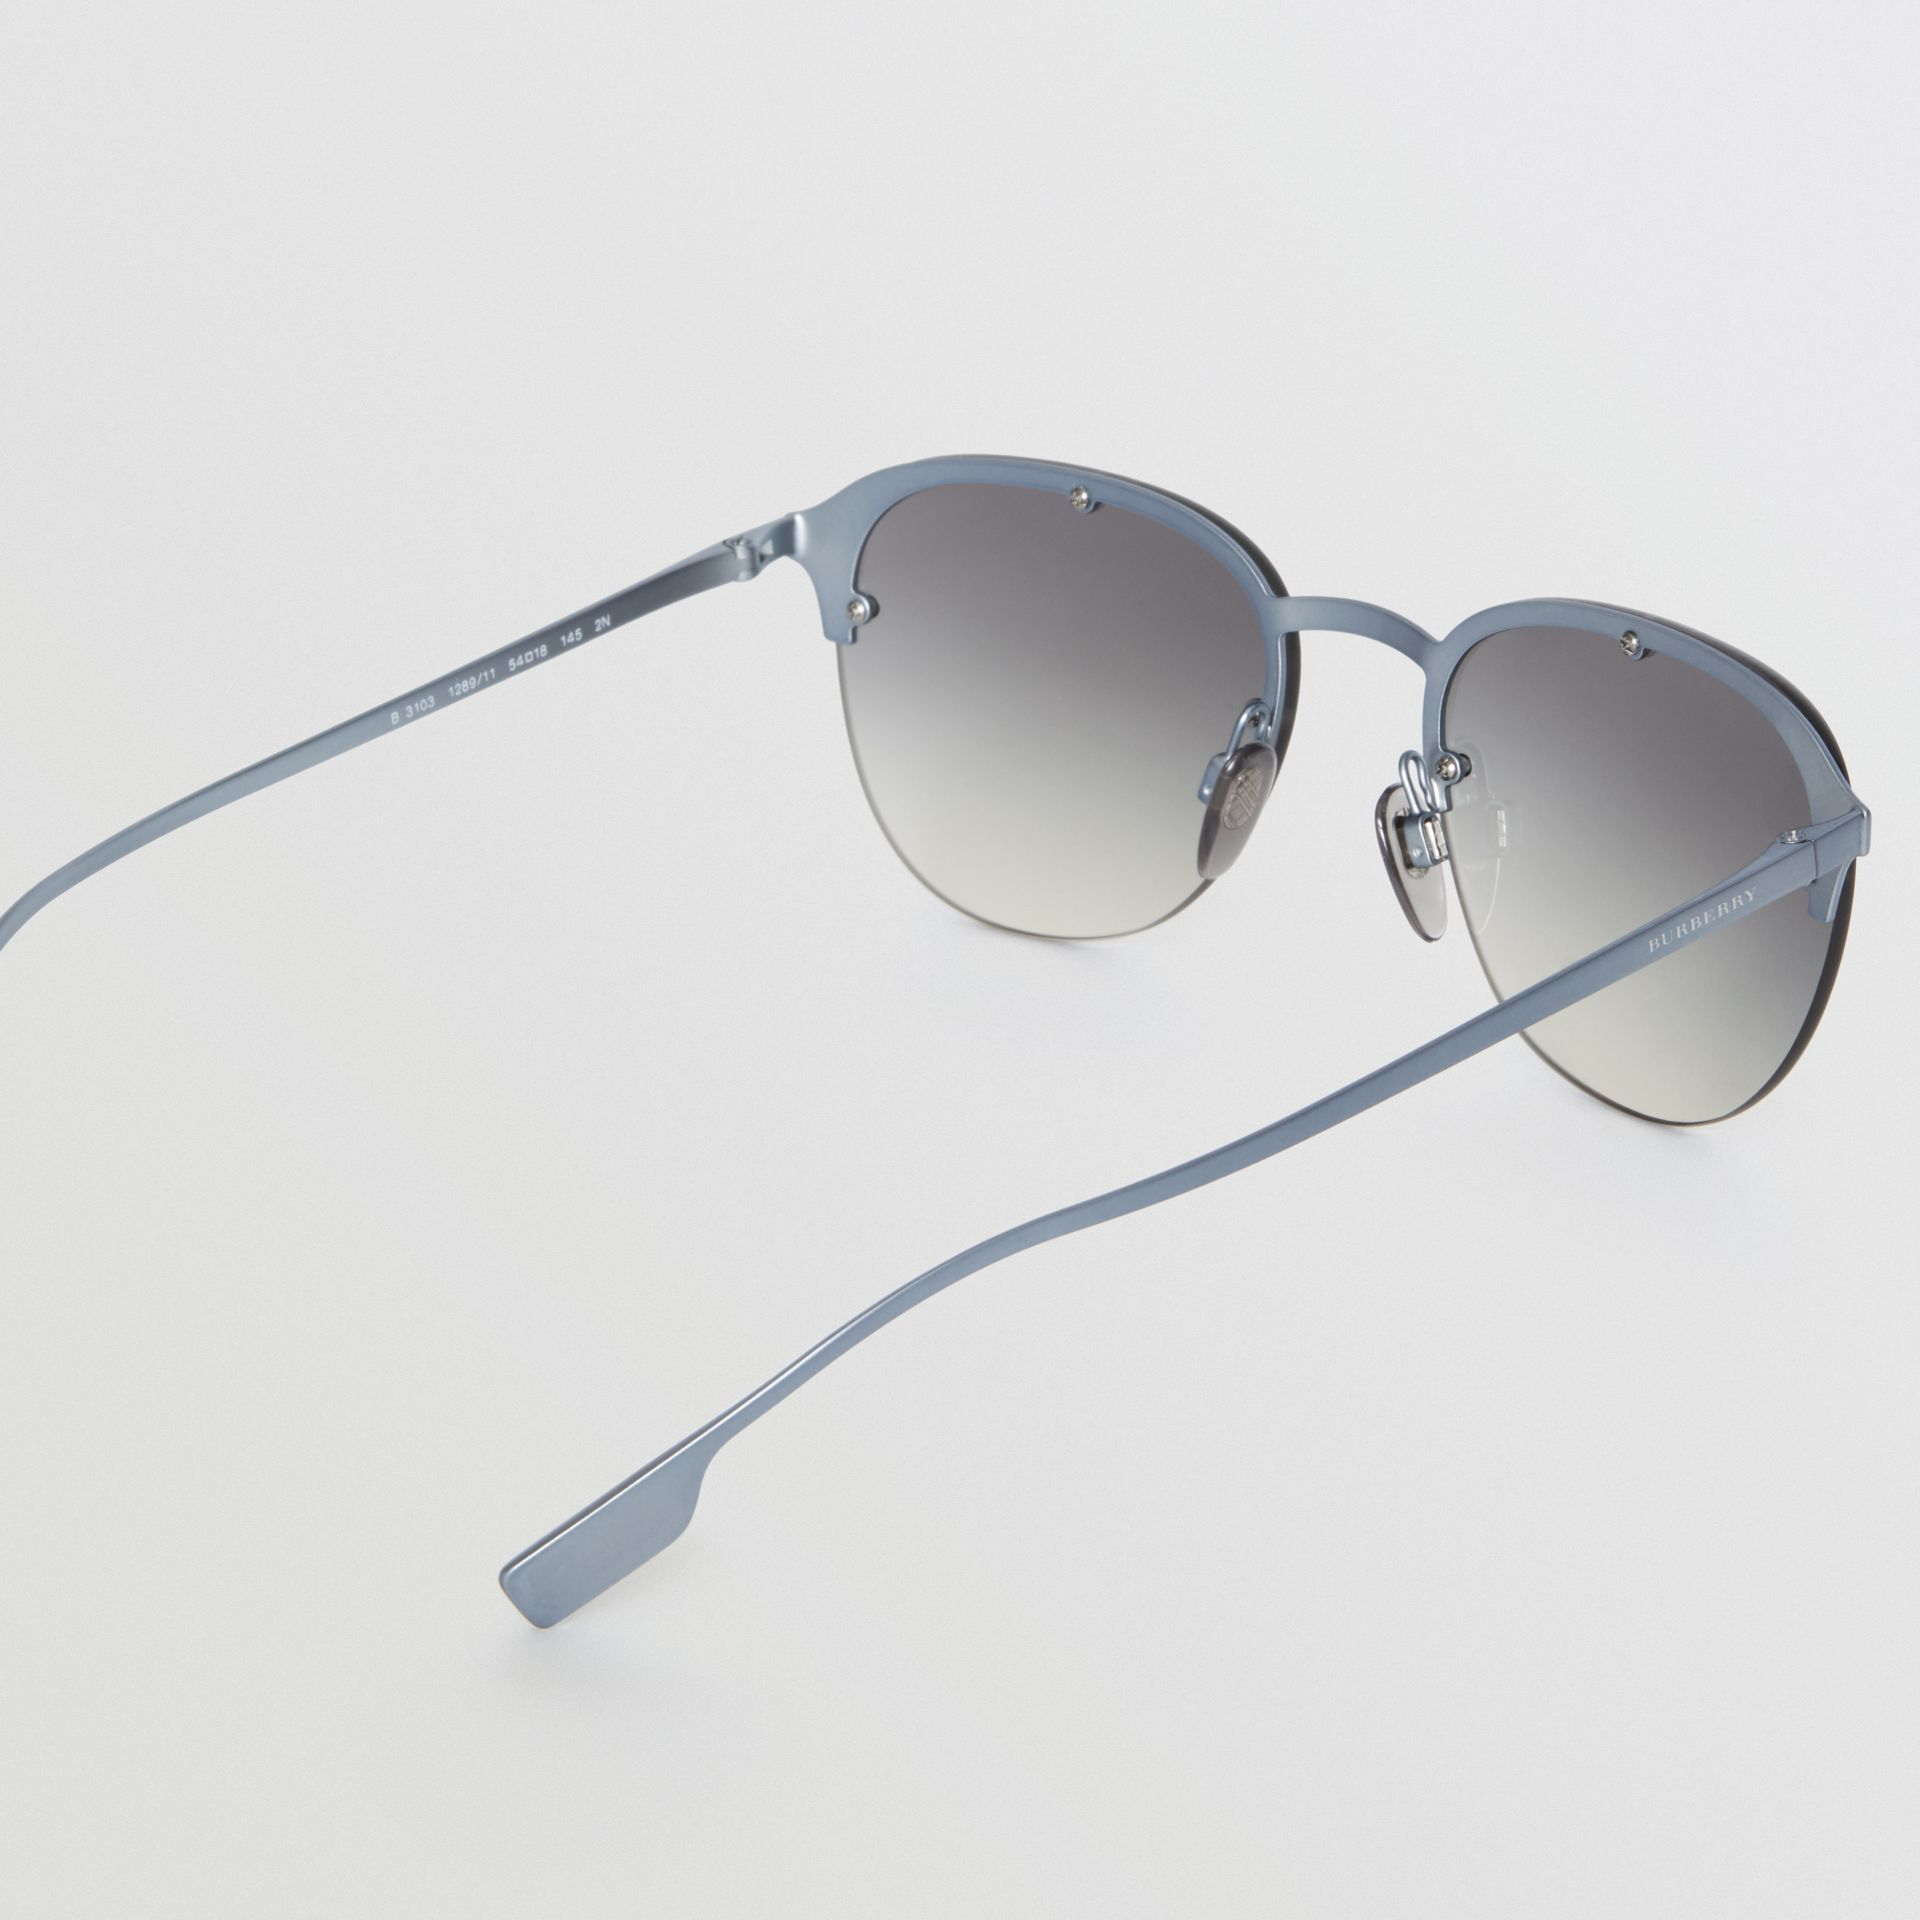 Round Frame Sunglasses in Grey - Men | Burberry Australia - gallery image 4